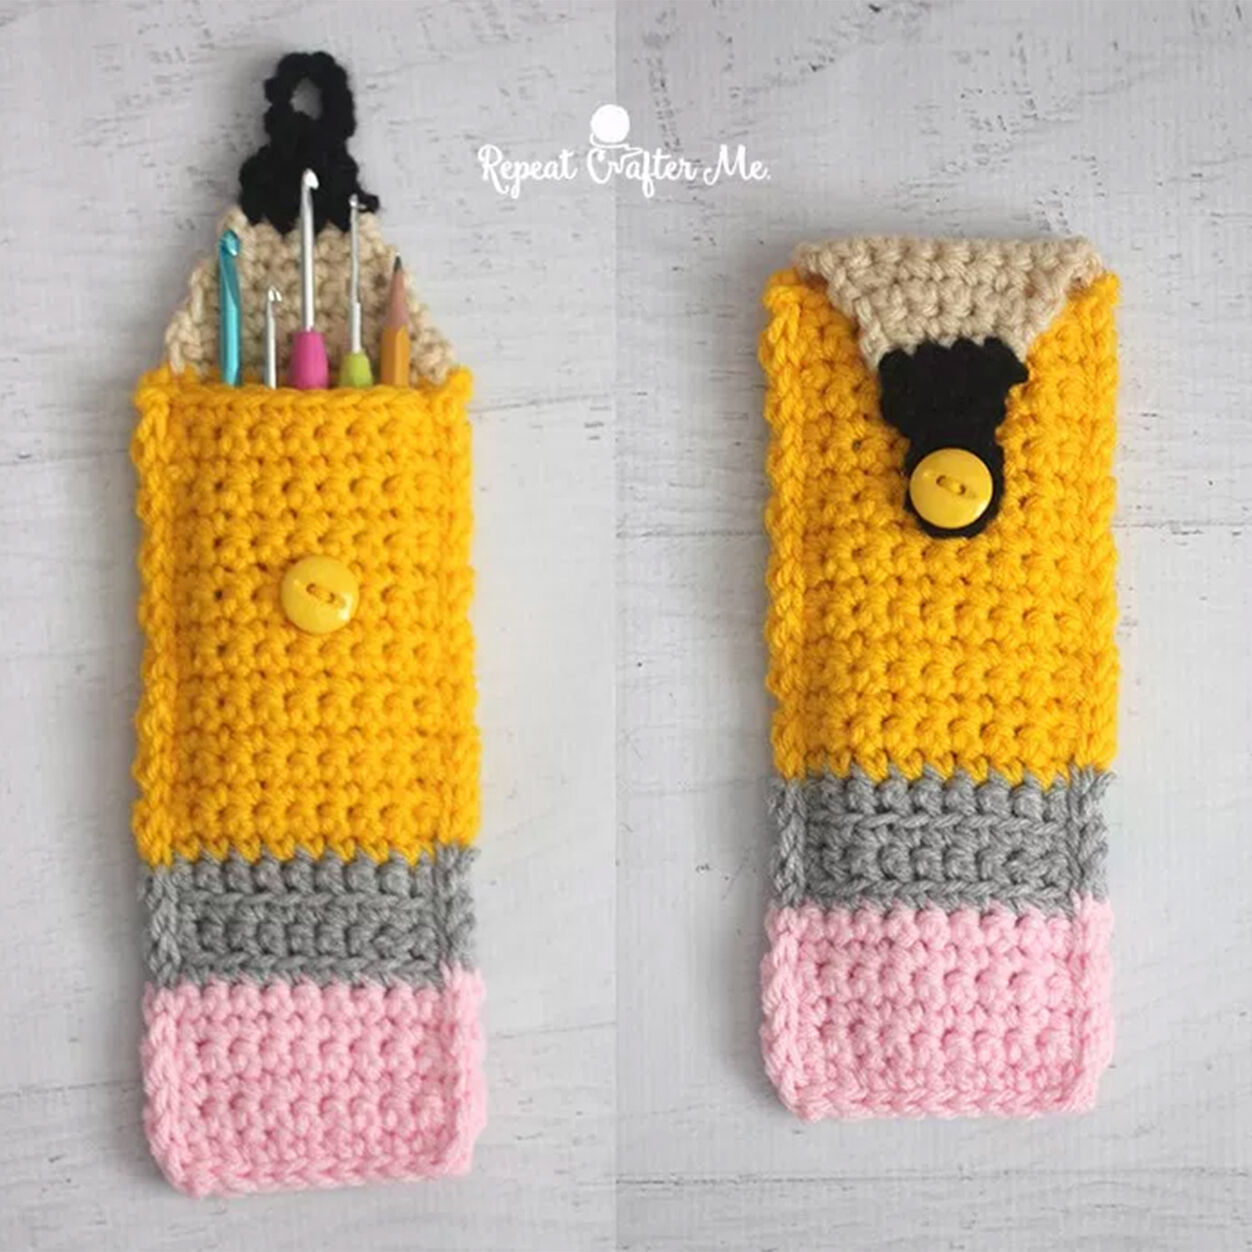 Bernat Crochet Pencil Pouch by Sarah @ Repeat Crafter Me